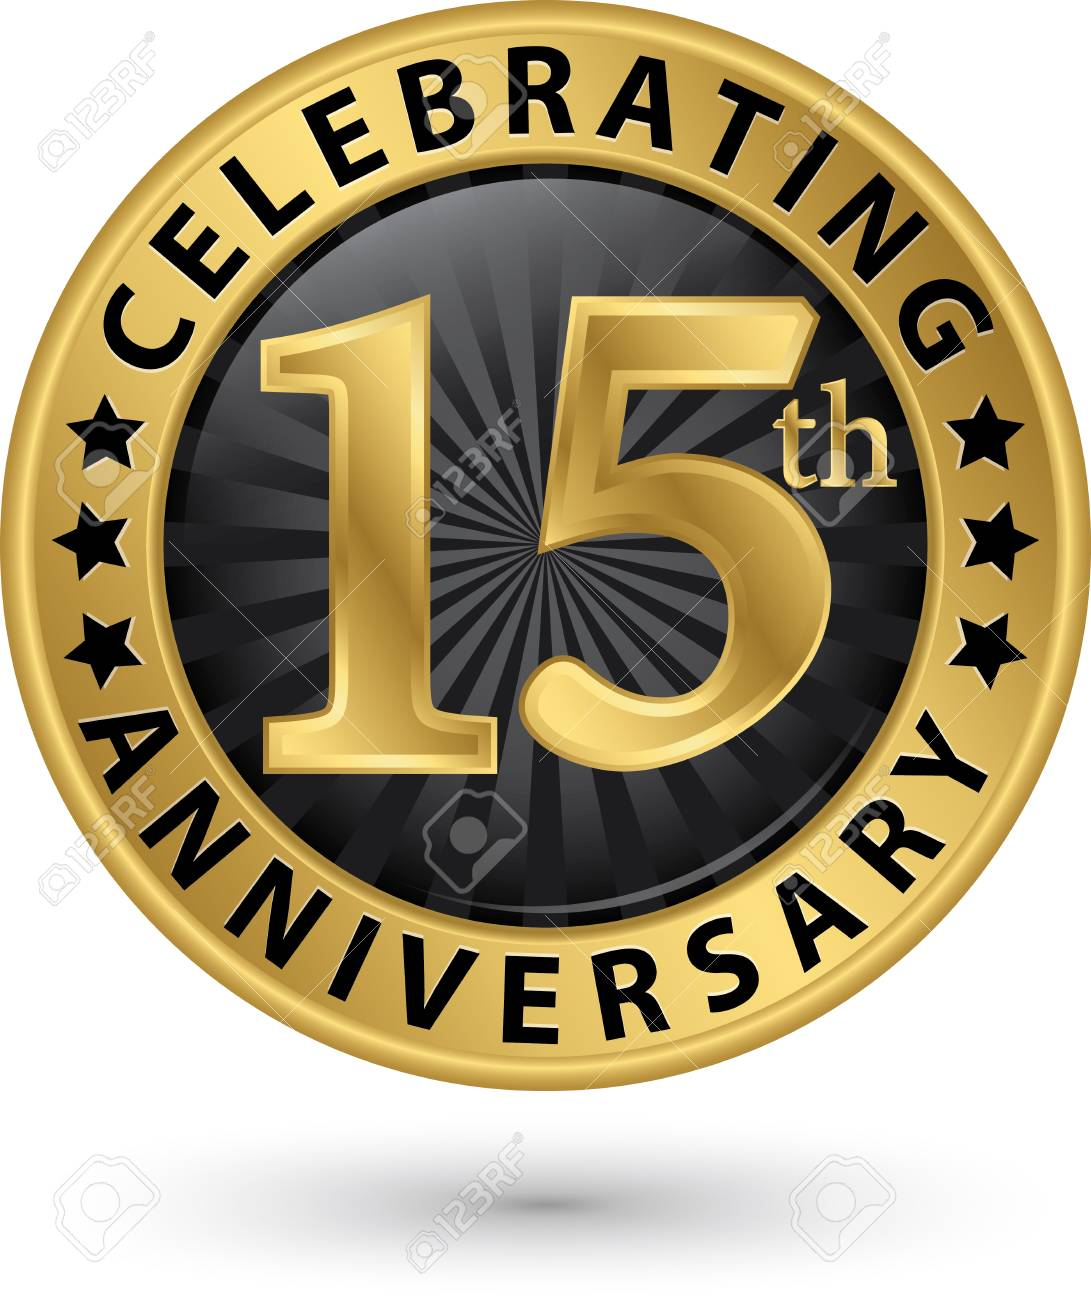 Celebrating 15th Anniversary Gold Label Vector Illustration Royalty Free Cliparts Vectors And Stock Illustration Image 97724737